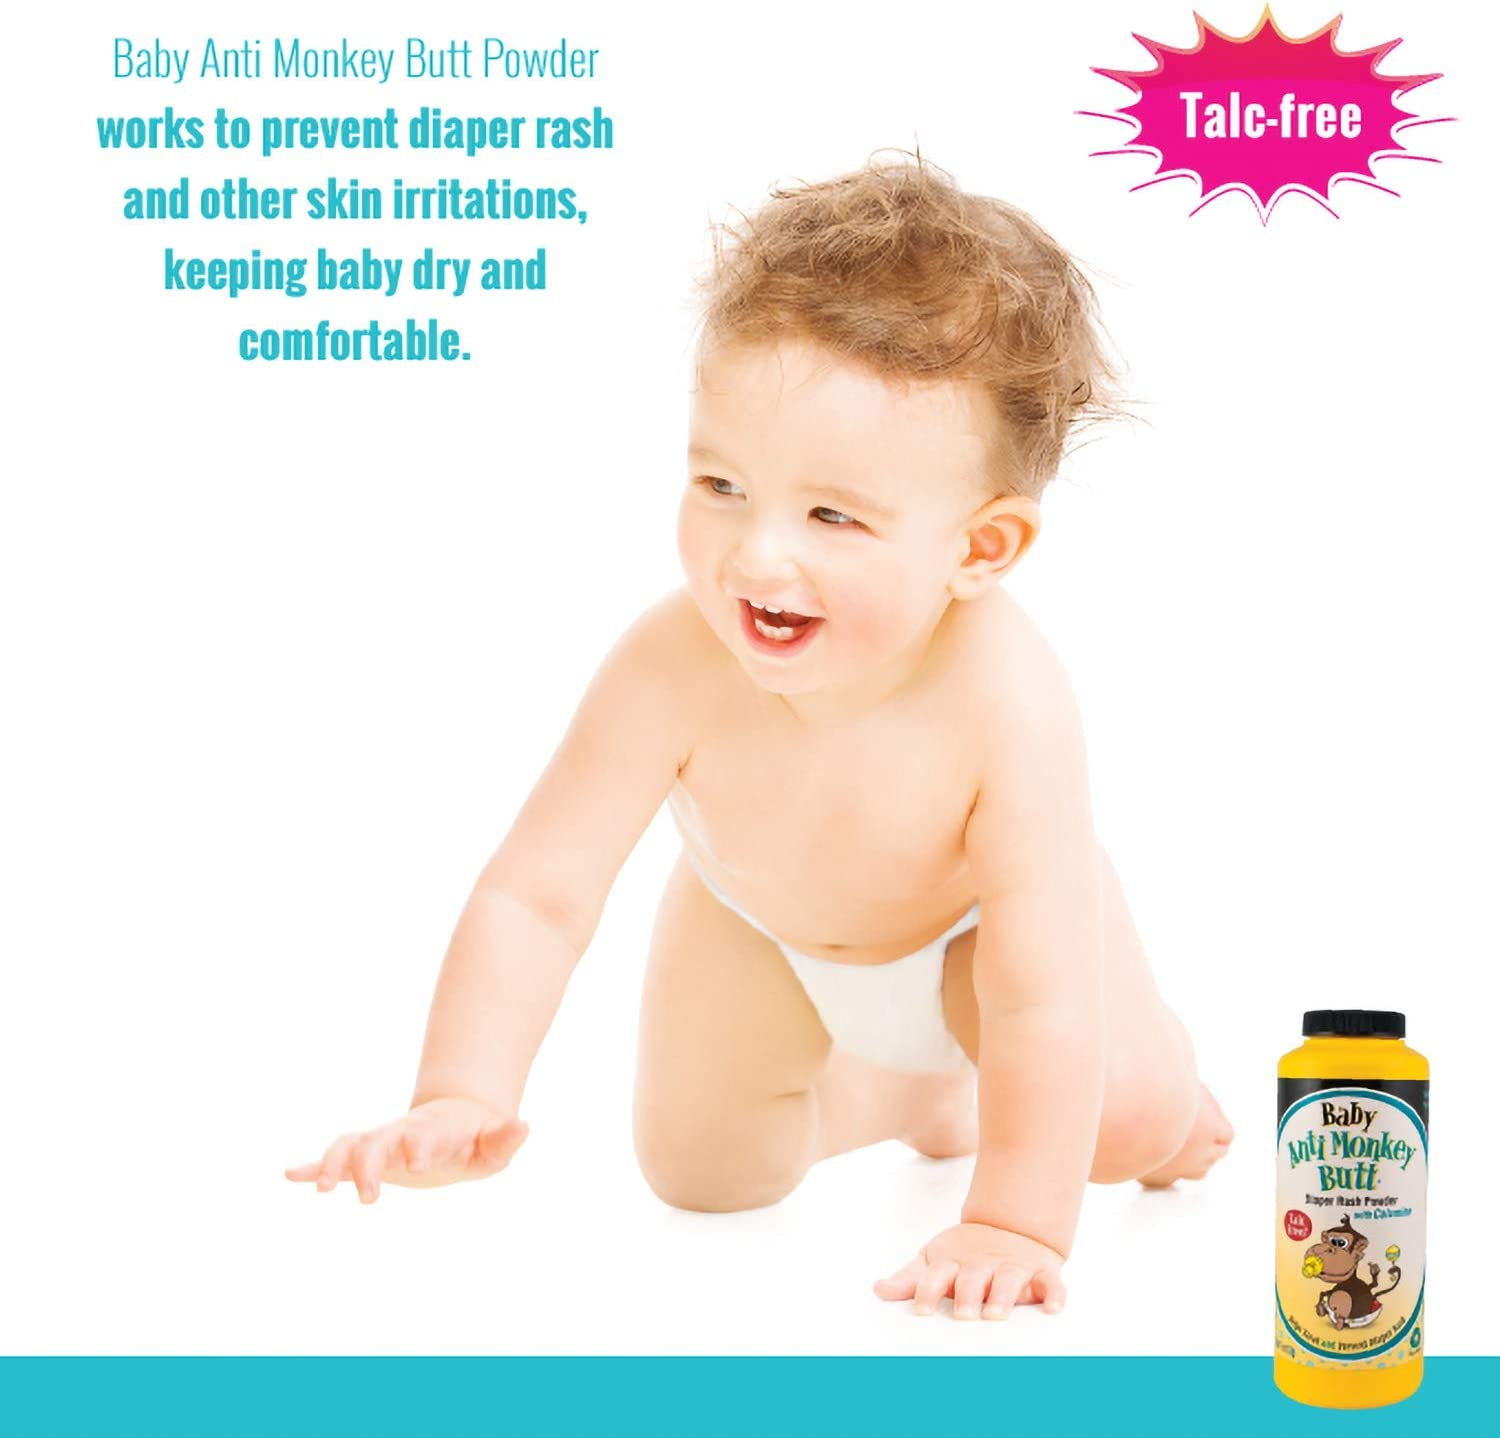 Best Baby Powders To Keep Your Little One Rash-free